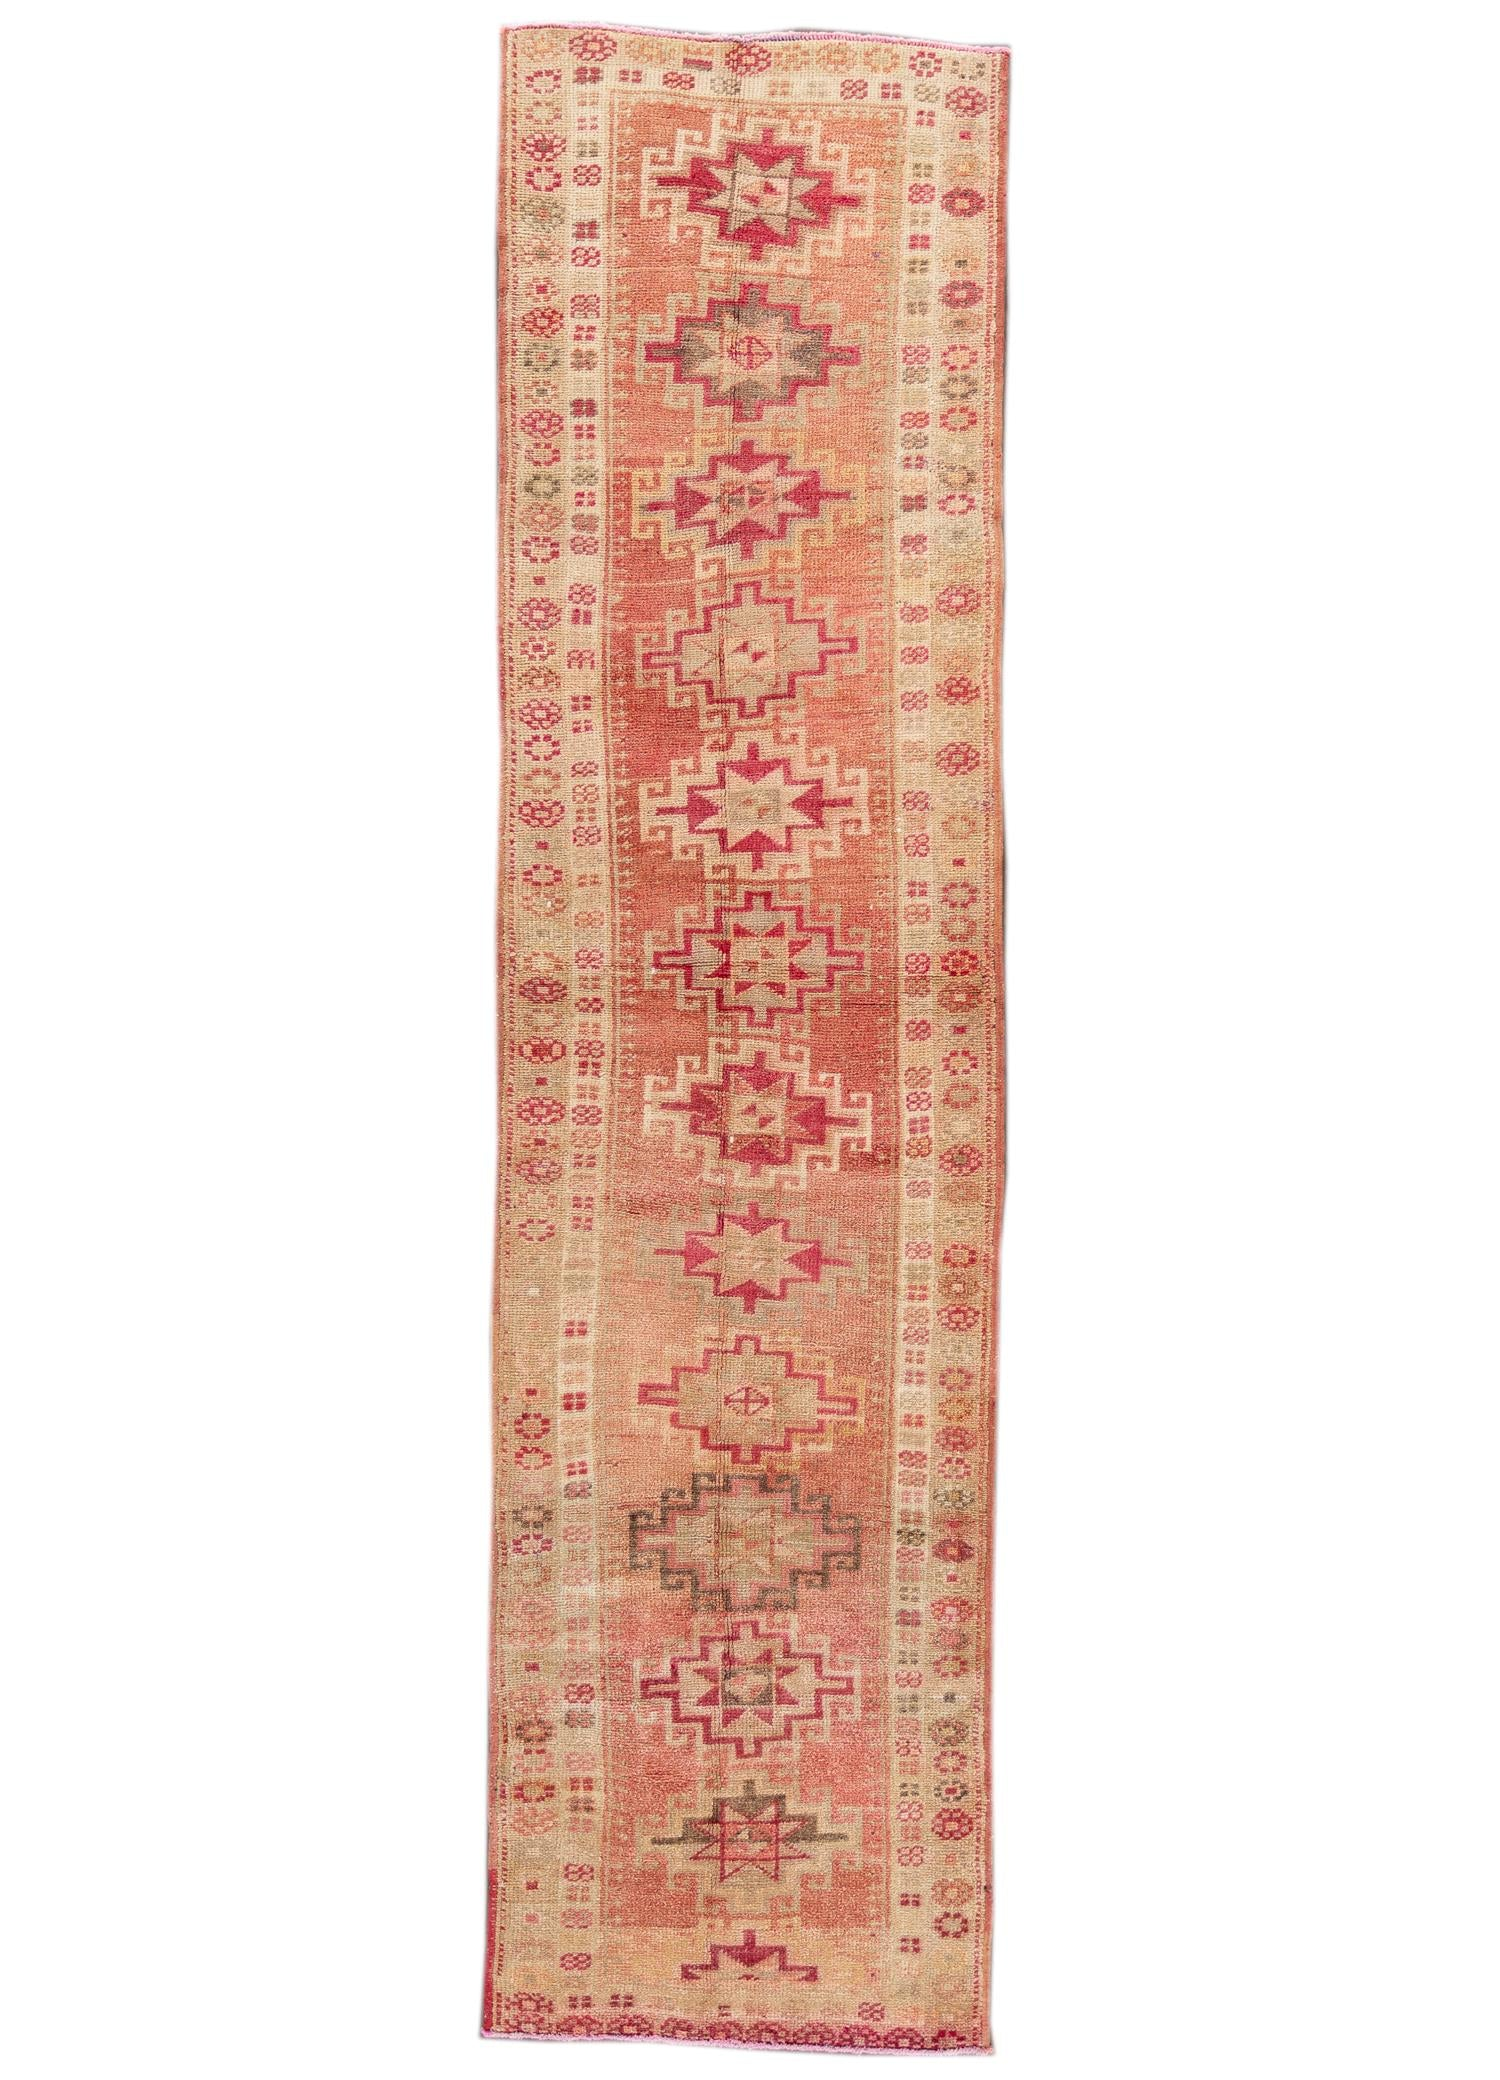 Anatolian Turkish RUnner Rug 3' x 11'